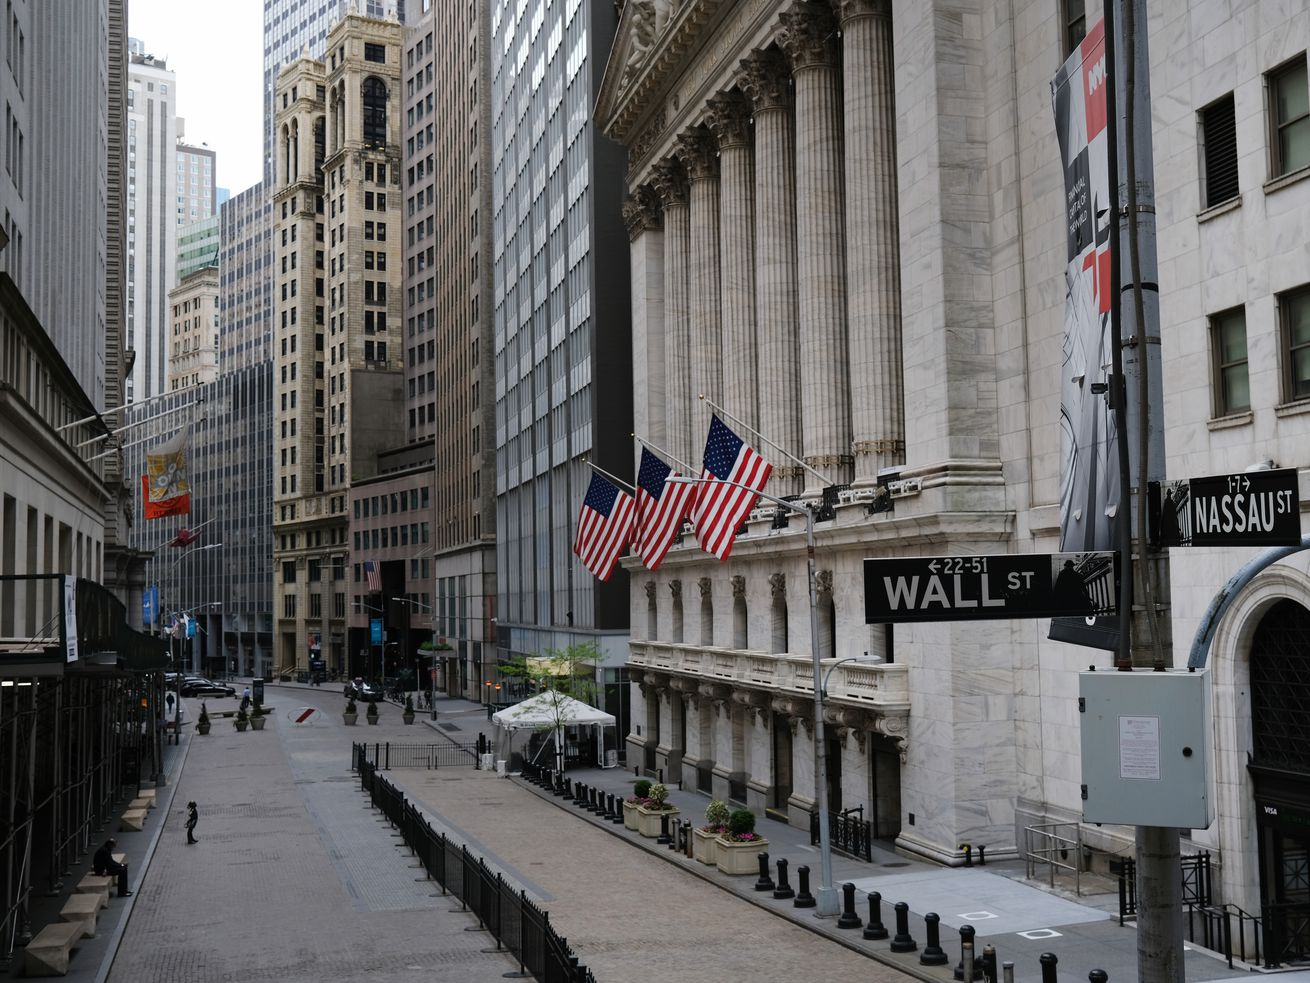 The outside of the New York Stock Exchange.